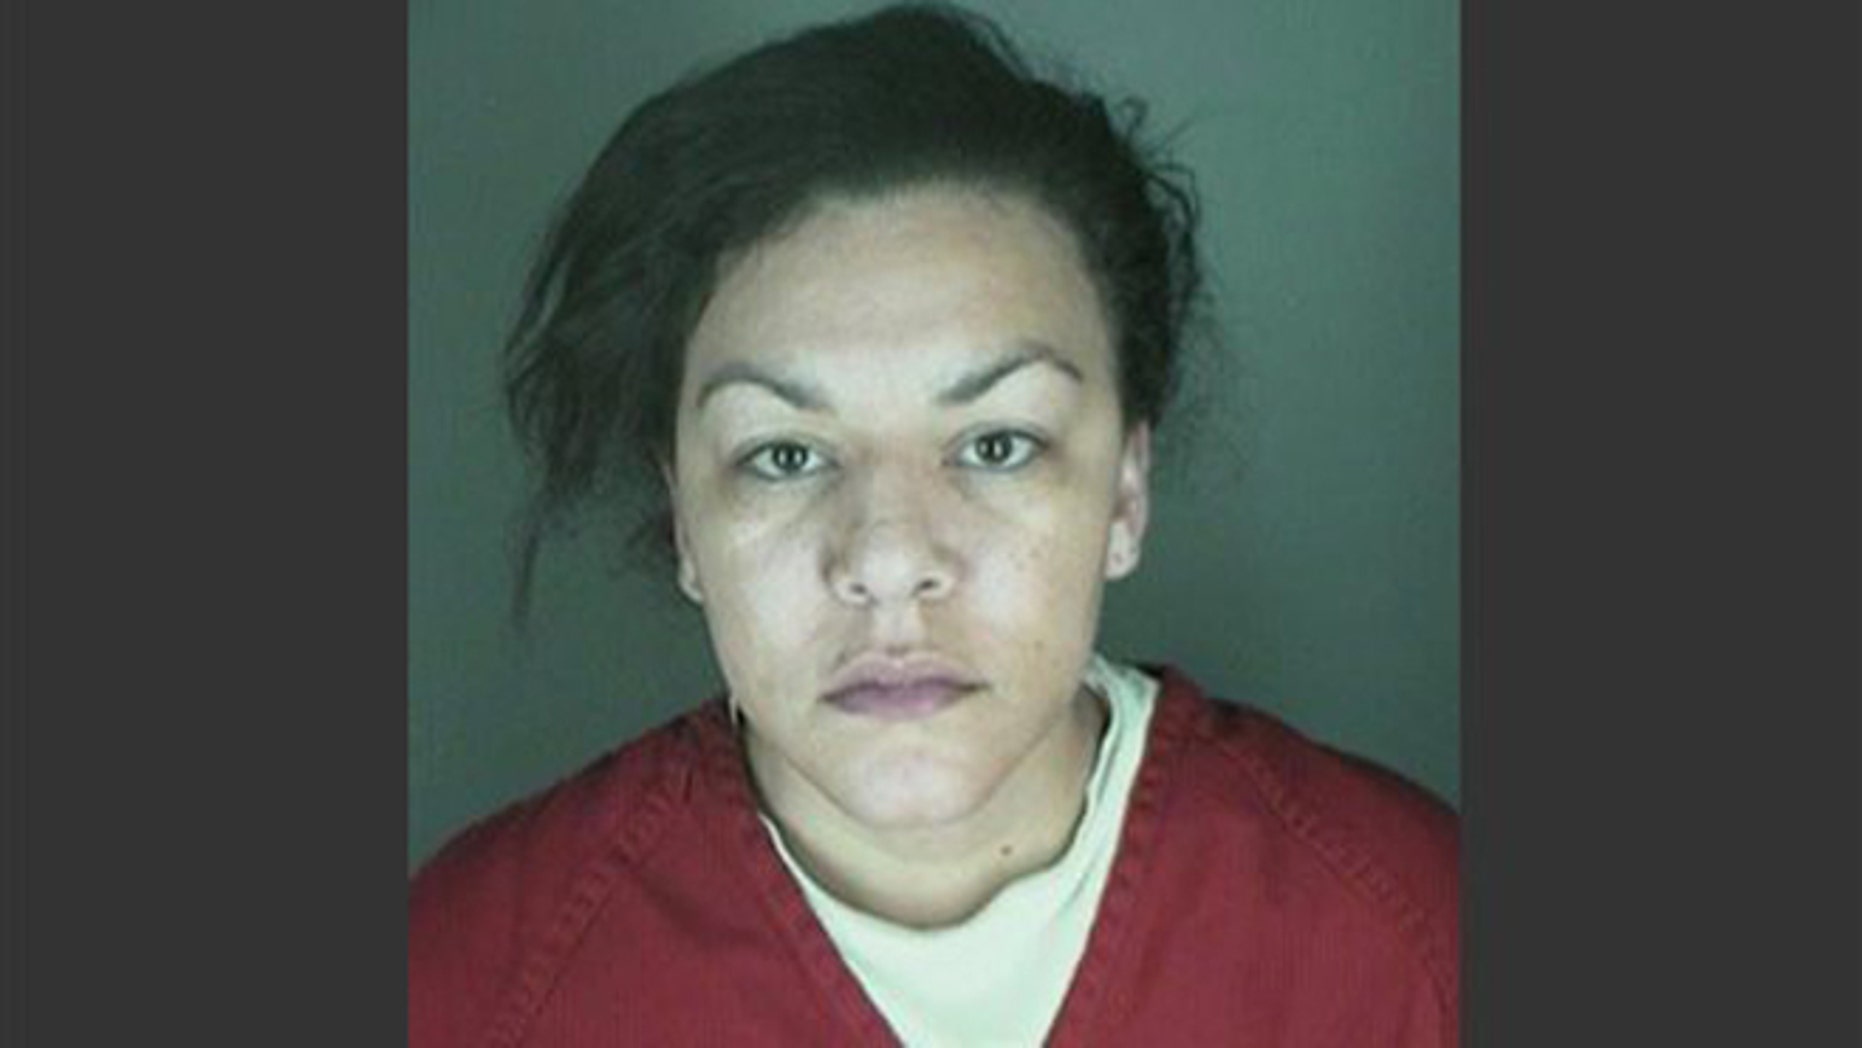 This undated booking photo provided by the Longmont Police Department shows Dynel Lane, 34, who is accused of stabbing a pregnant woman in the stomach and removing her baby, while the expectant mother visited her home to buy baby clothes advertised on Craigslist authorities said.